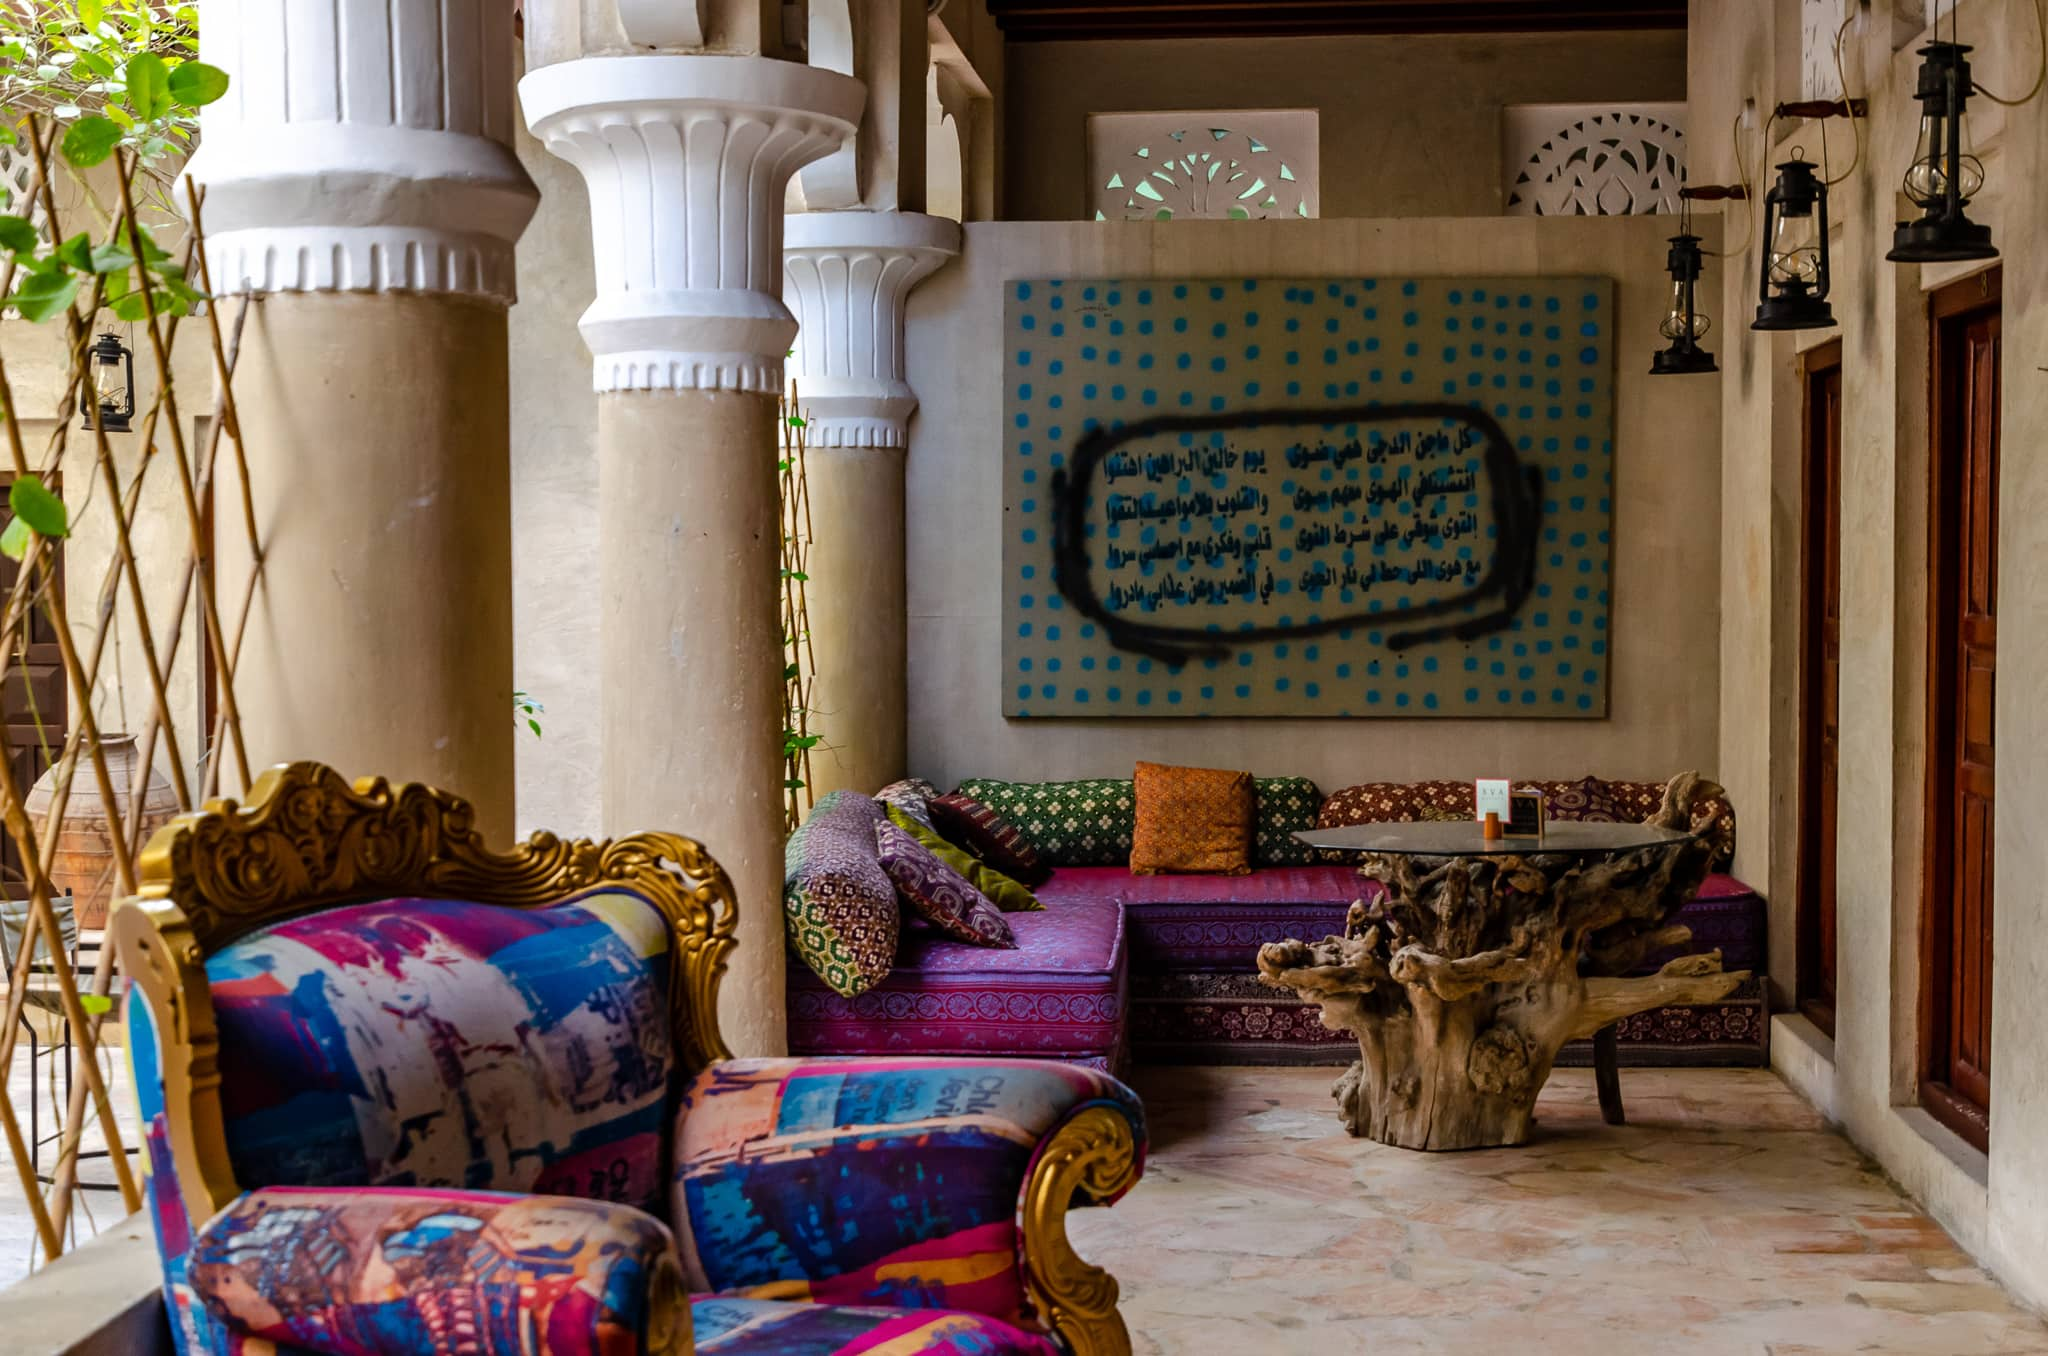 Where to stay in Dubai-try the Boutique XVA Art Hotel